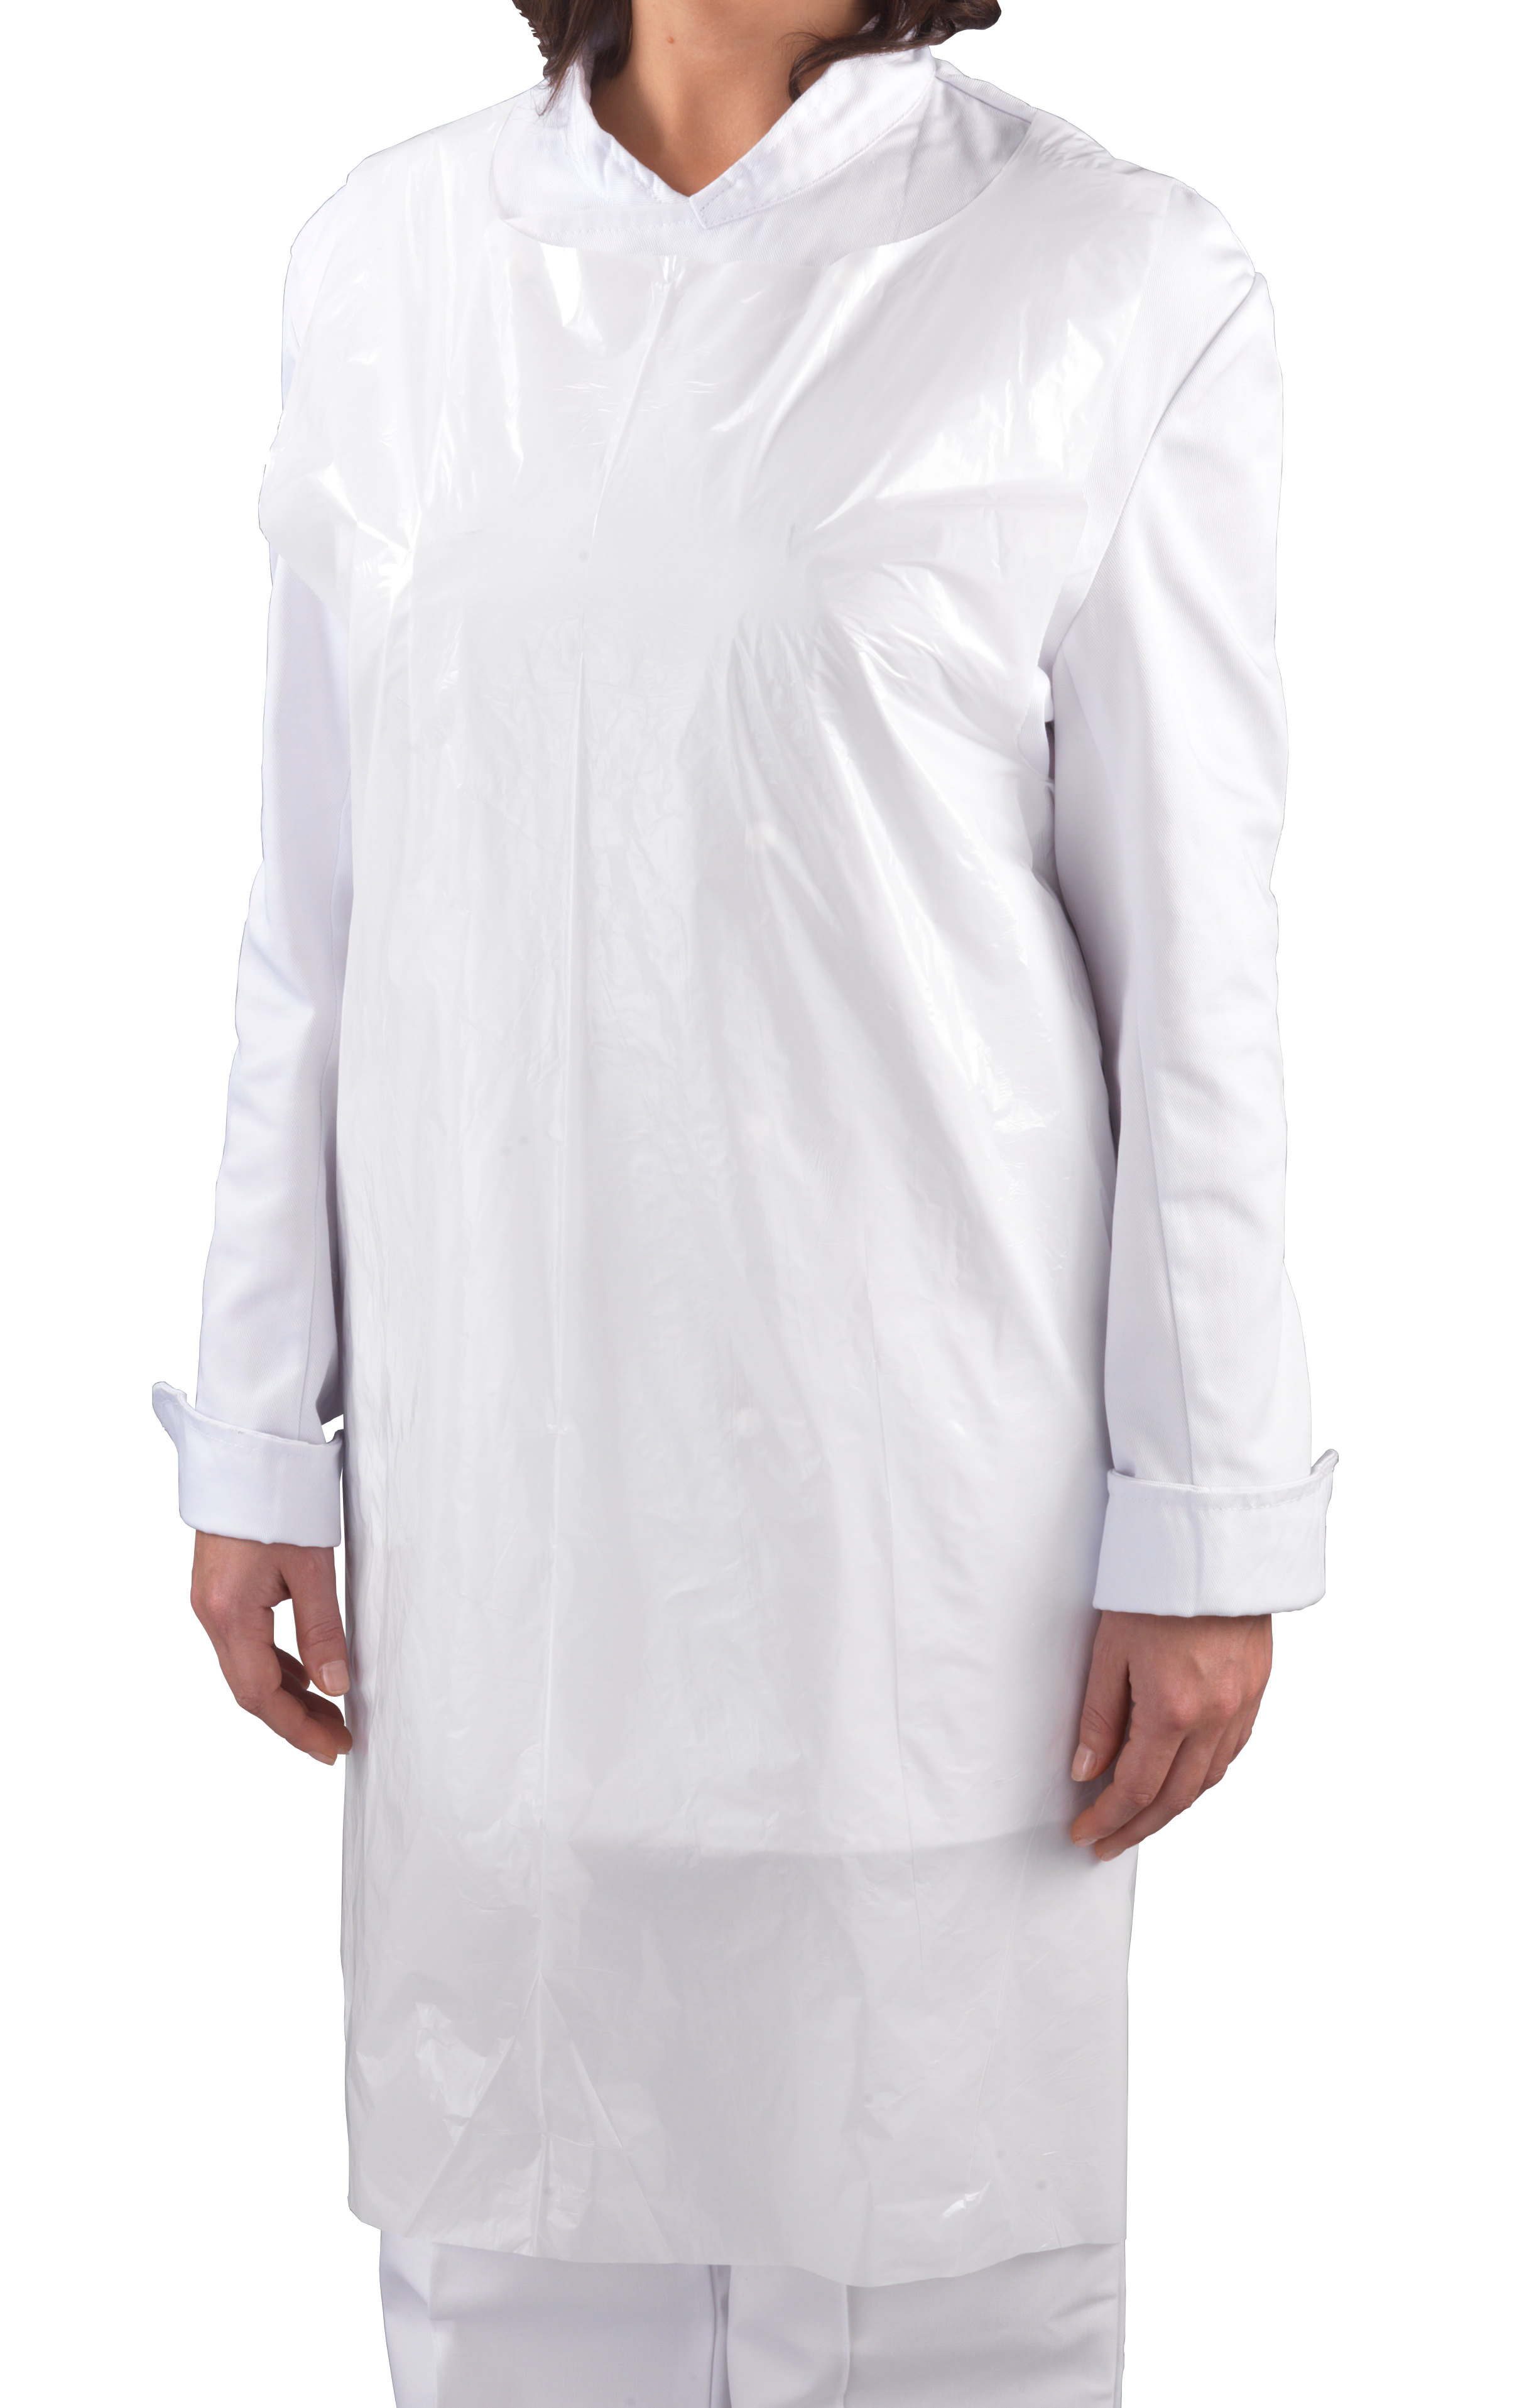 Plastic Aprons Flat Packed White